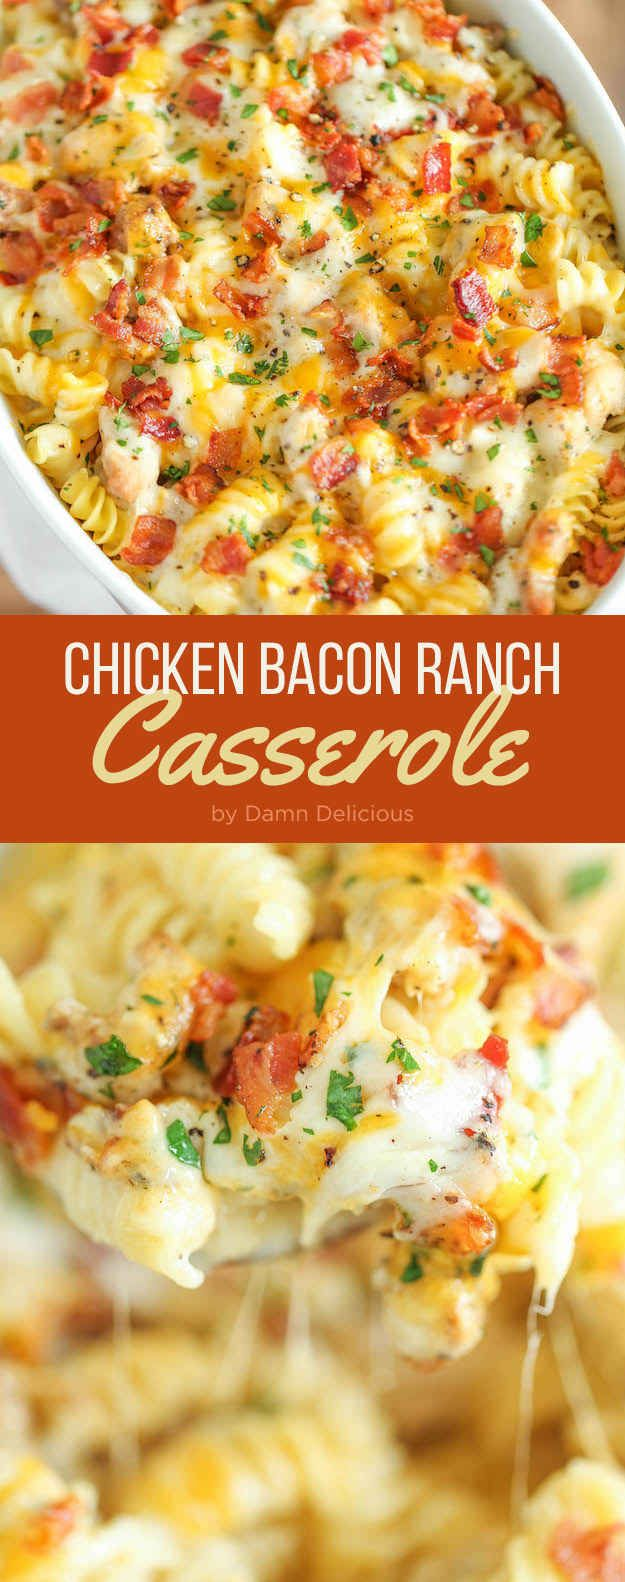 7 Awesome Ideas For Easy Weeknight Dinners Recipes Pinterest